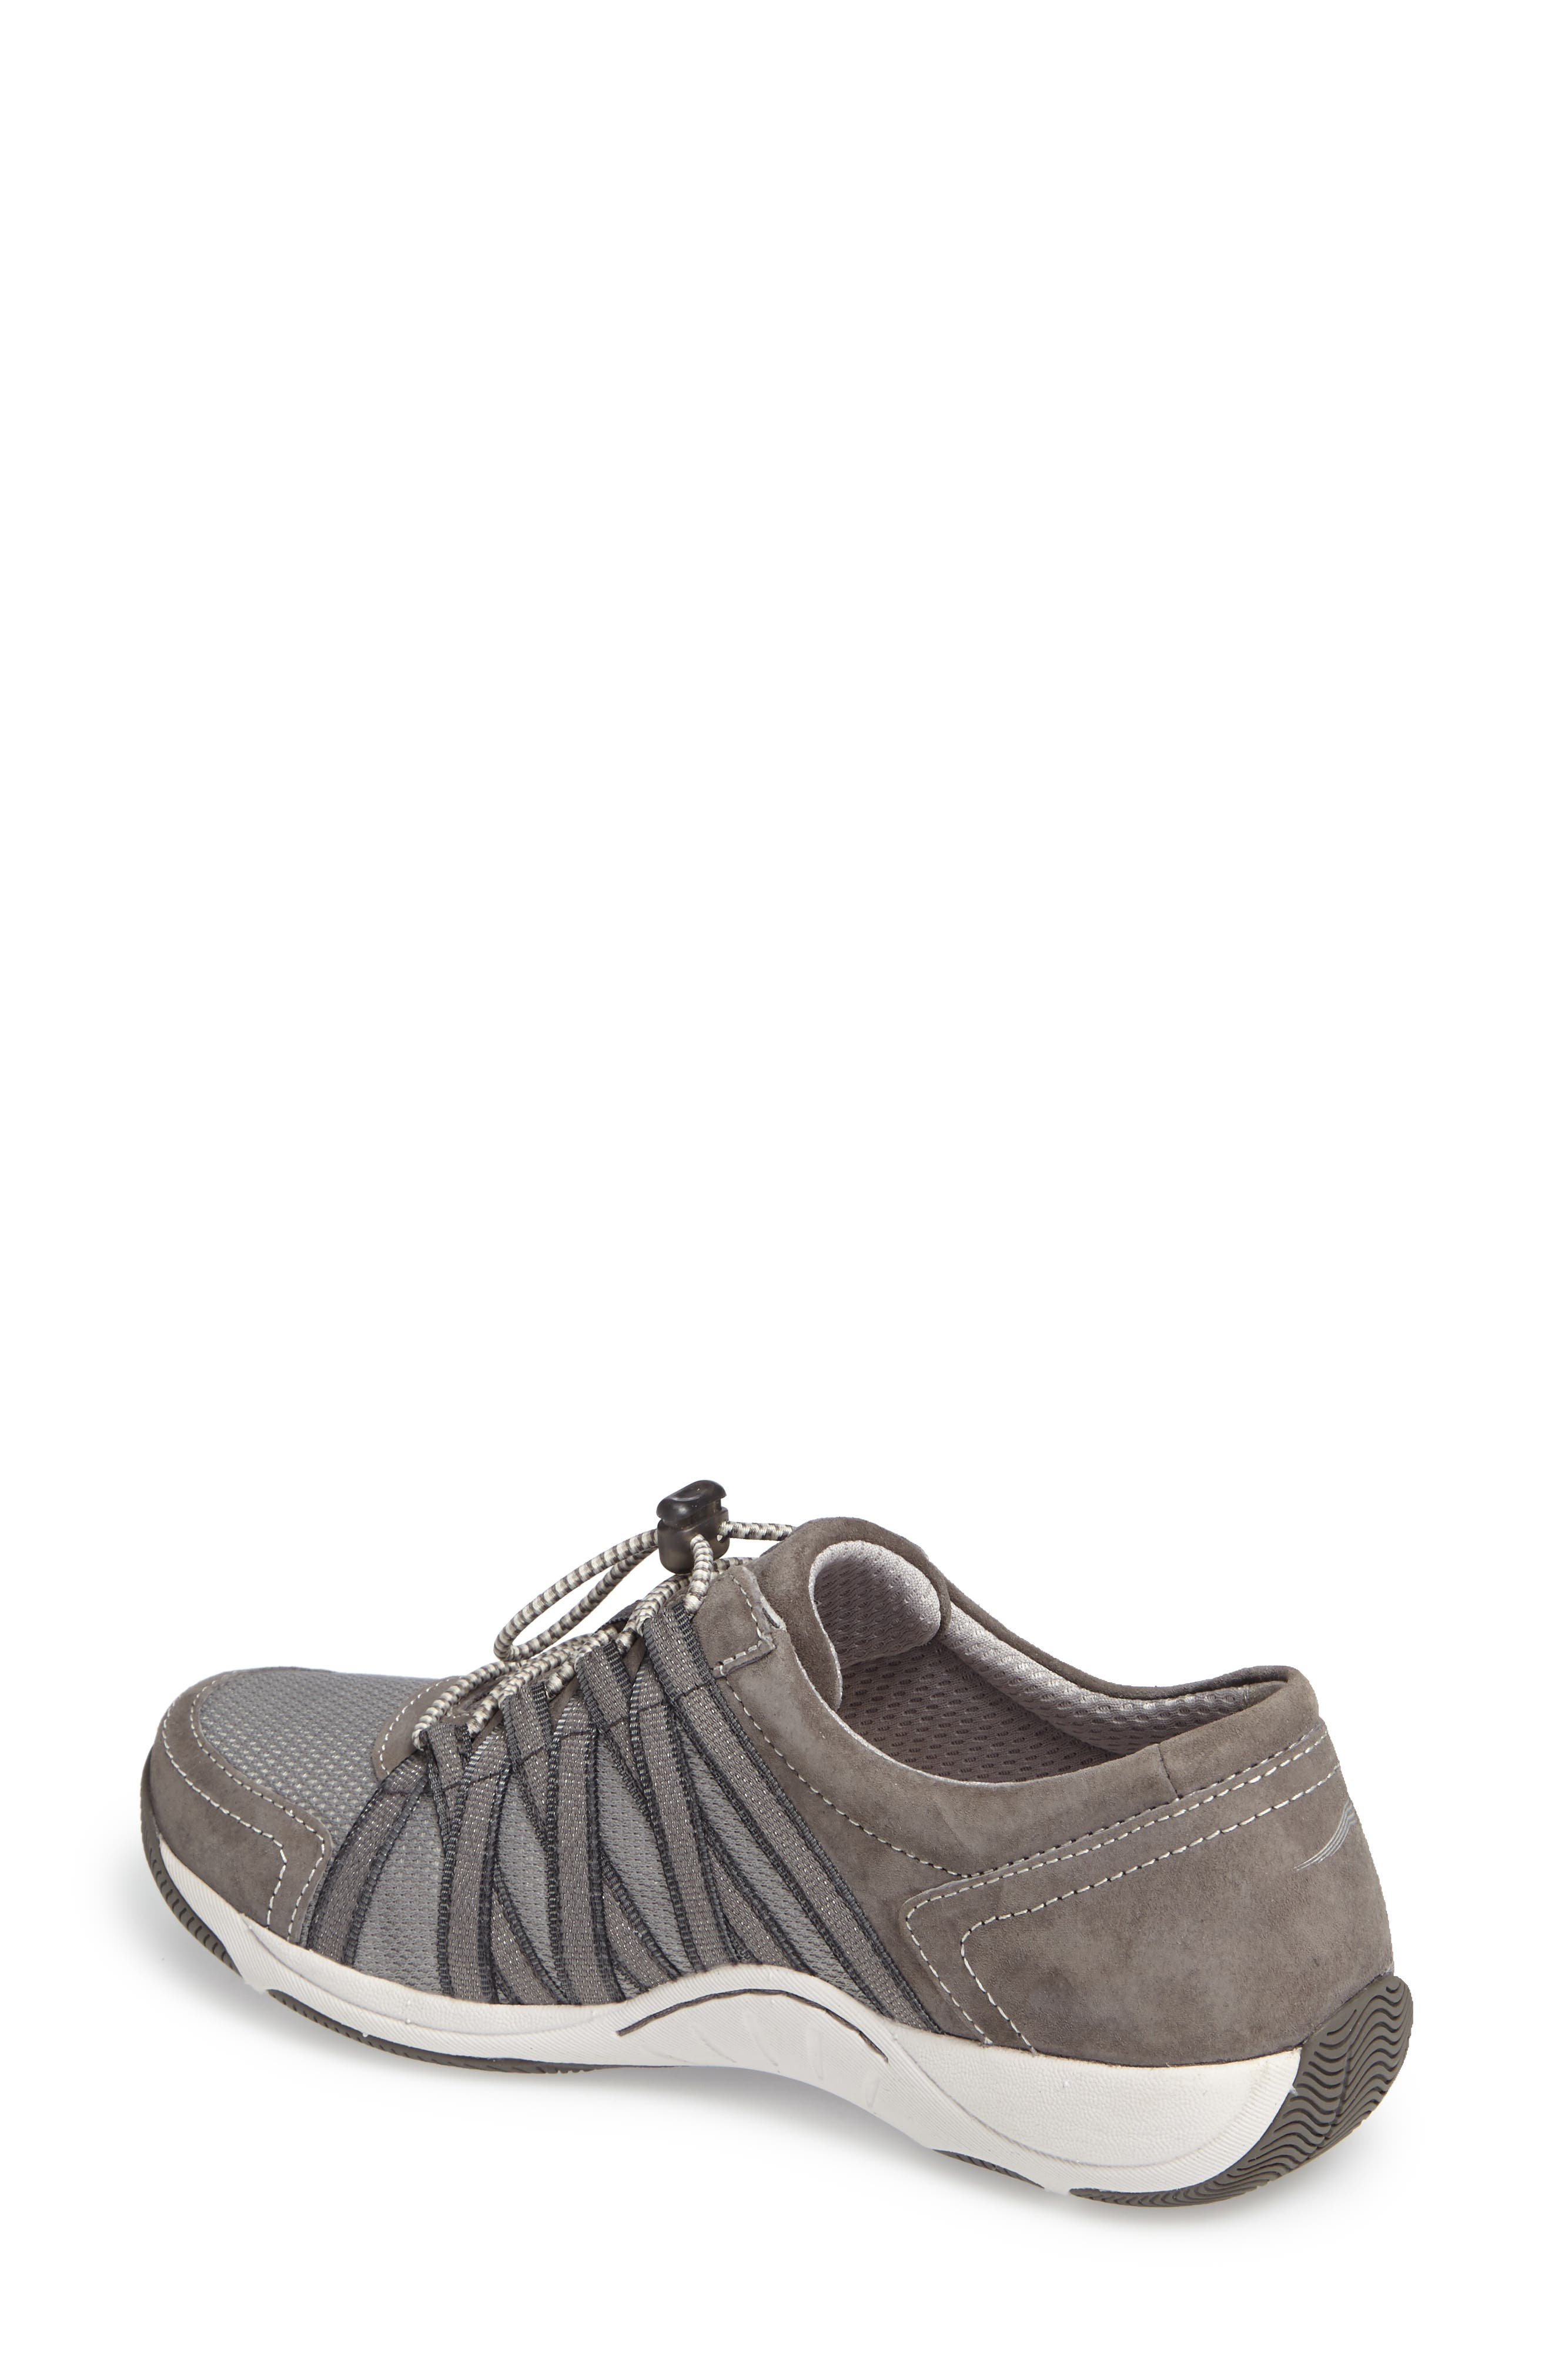 Halifax Collection Honor Sneaker,                             Alternate thumbnail 14, color,